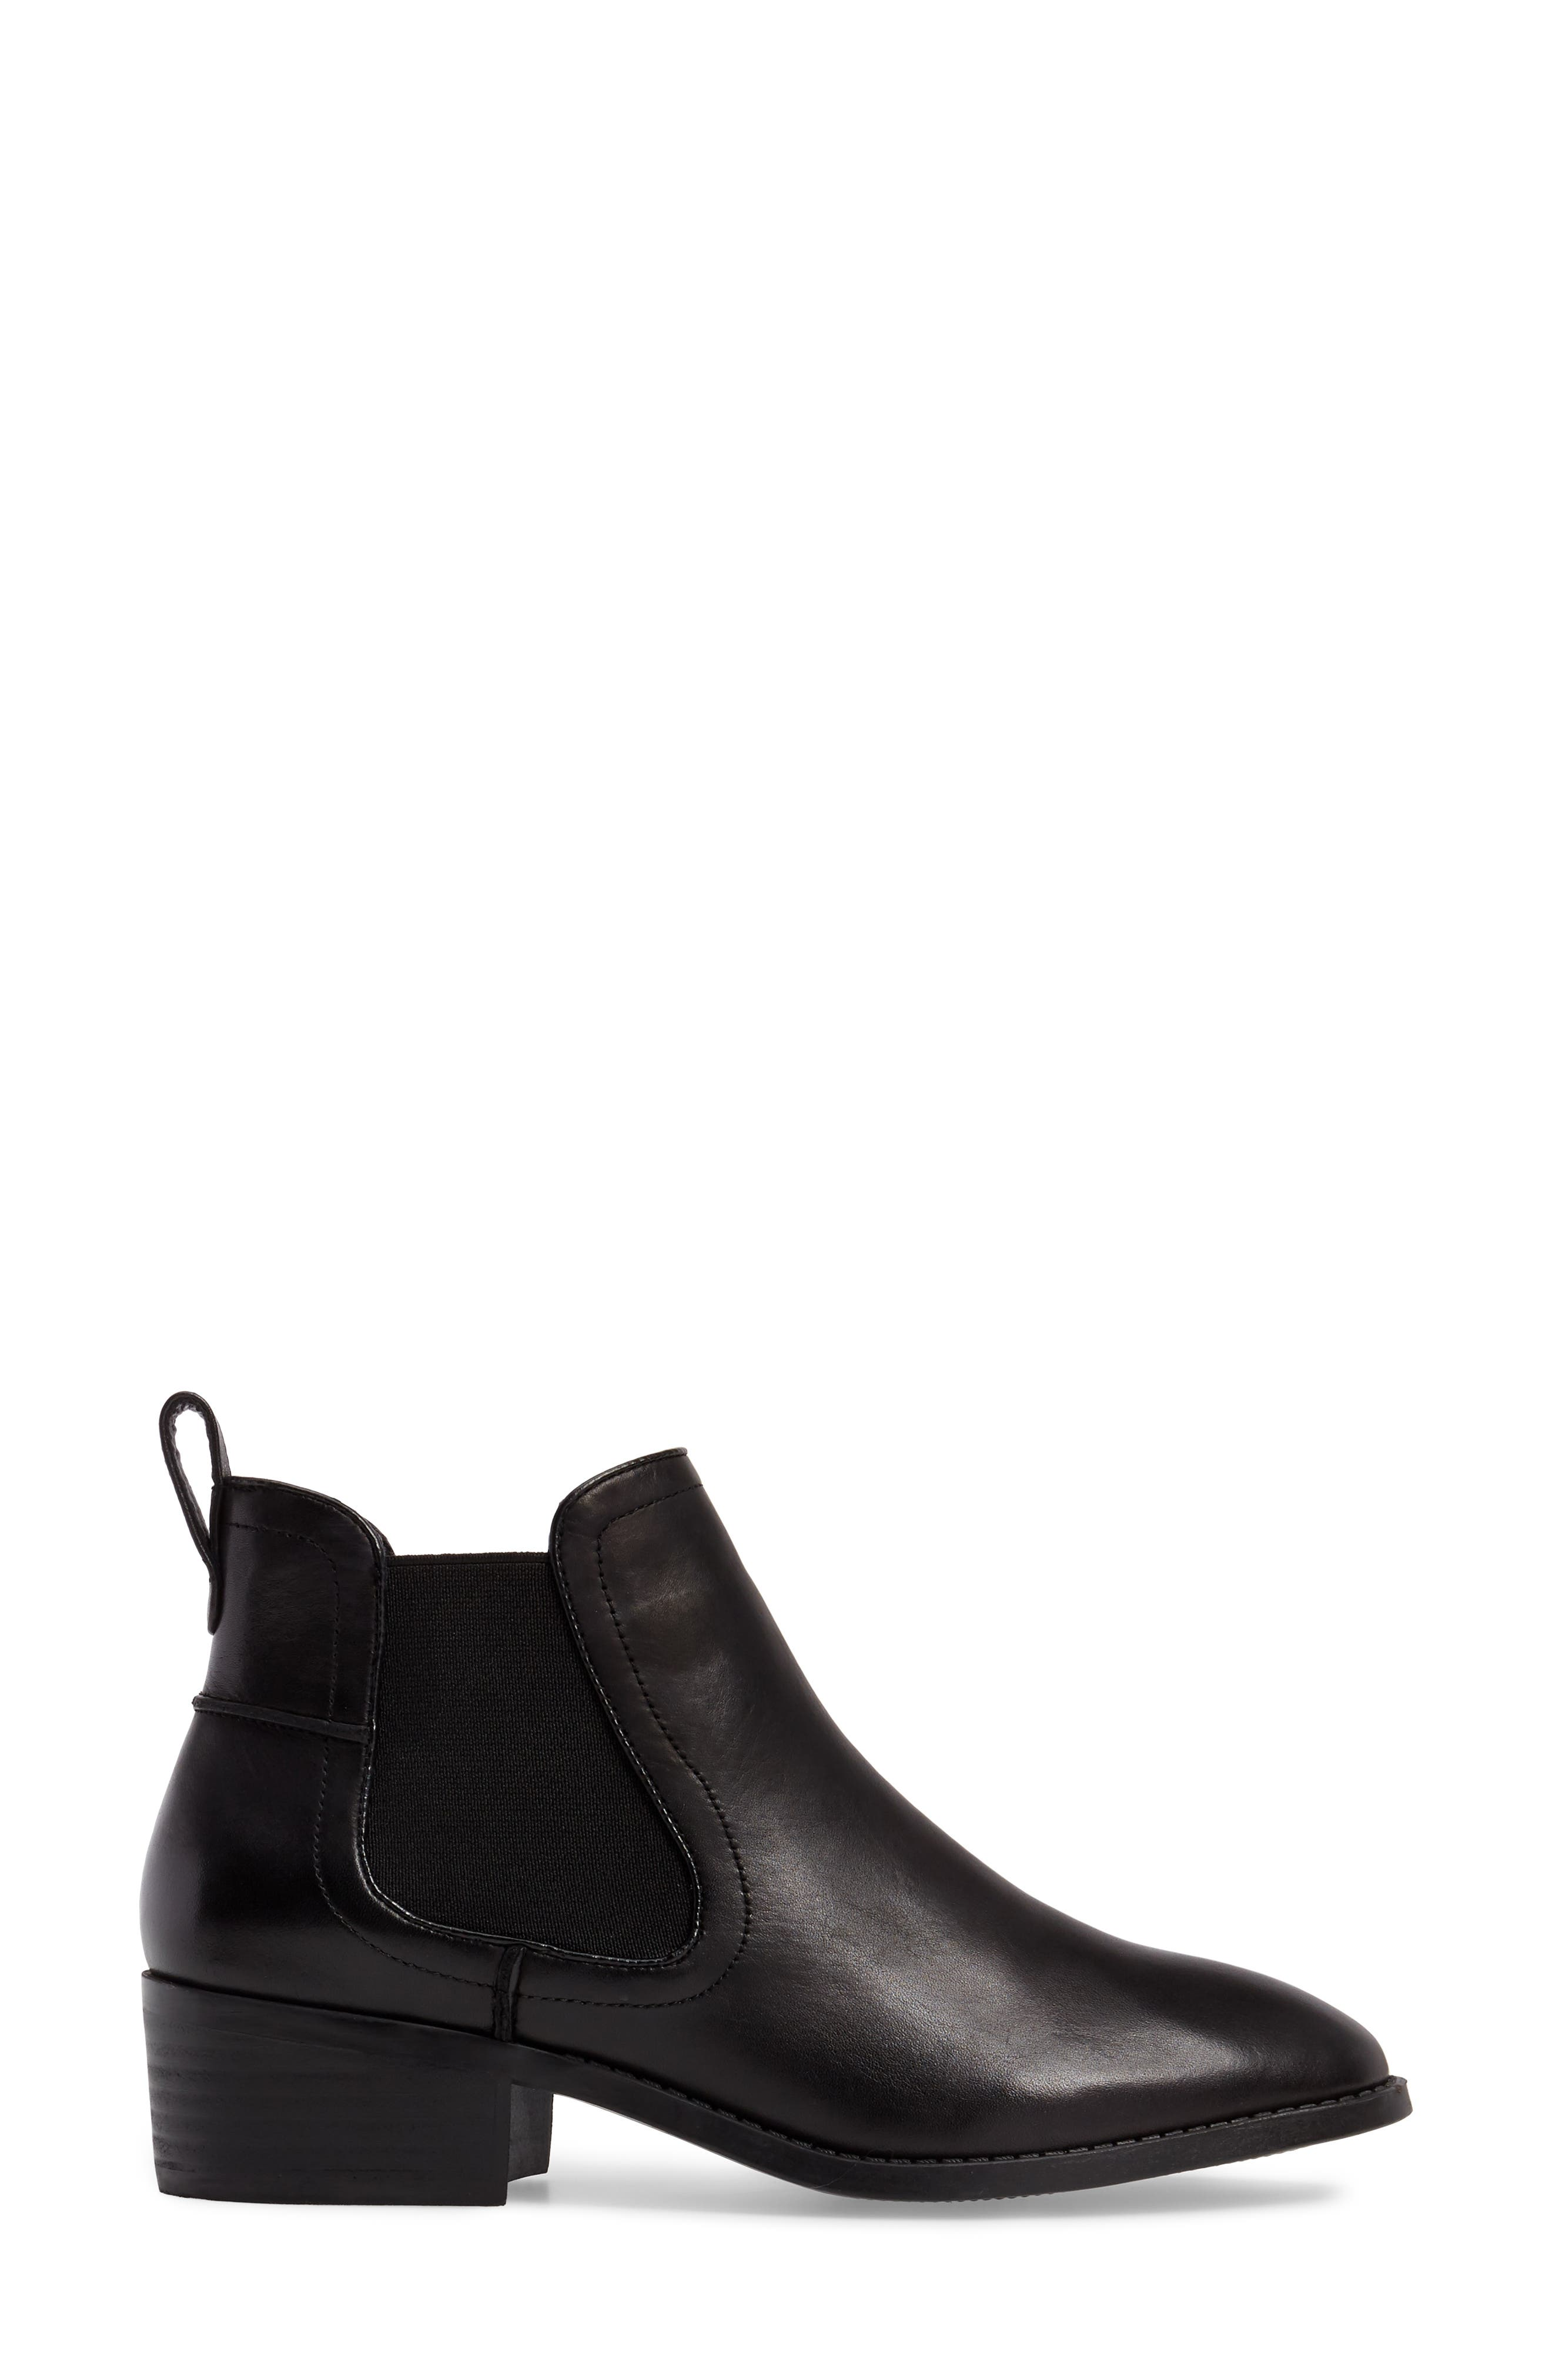 Dicey Chelsea Boot,                             Alternate thumbnail 3, color,                             Black Leather